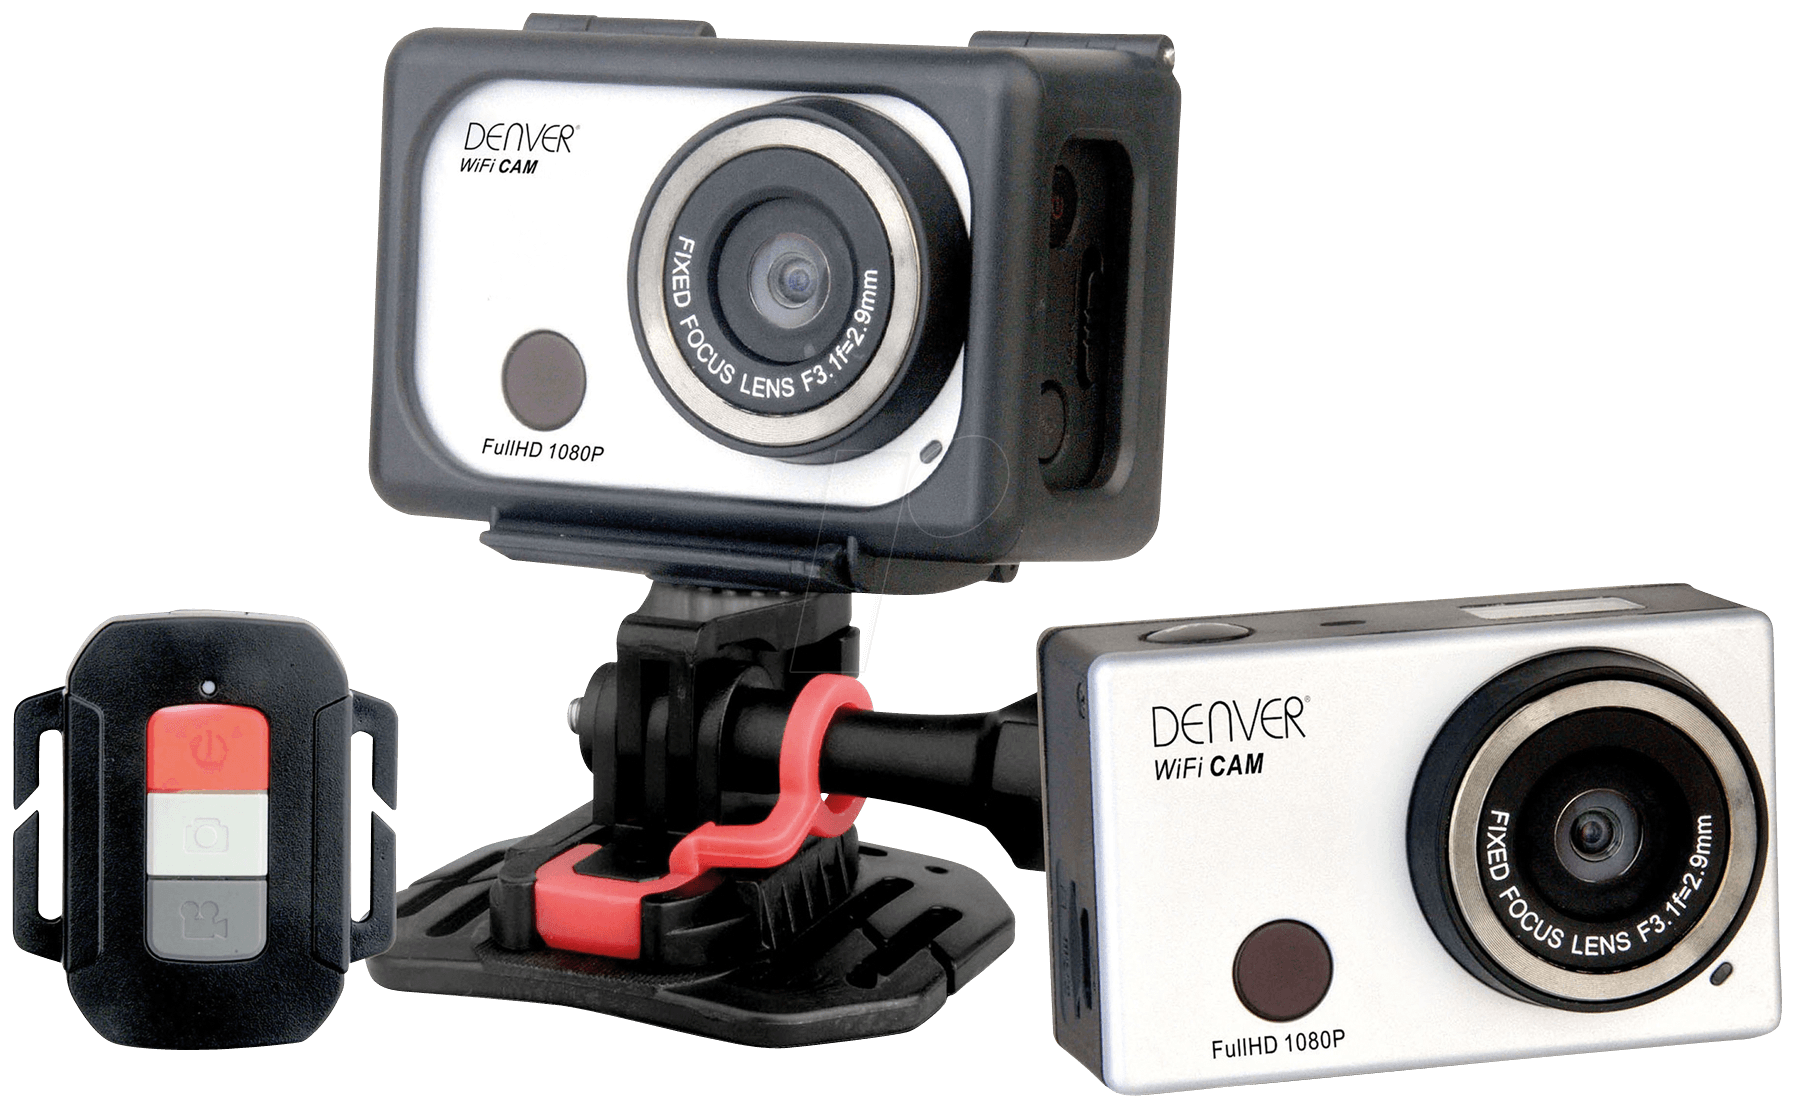 denver ac 5000w2 full hd action cam with wi fi function. Black Bedroom Furniture Sets. Home Design Ideas